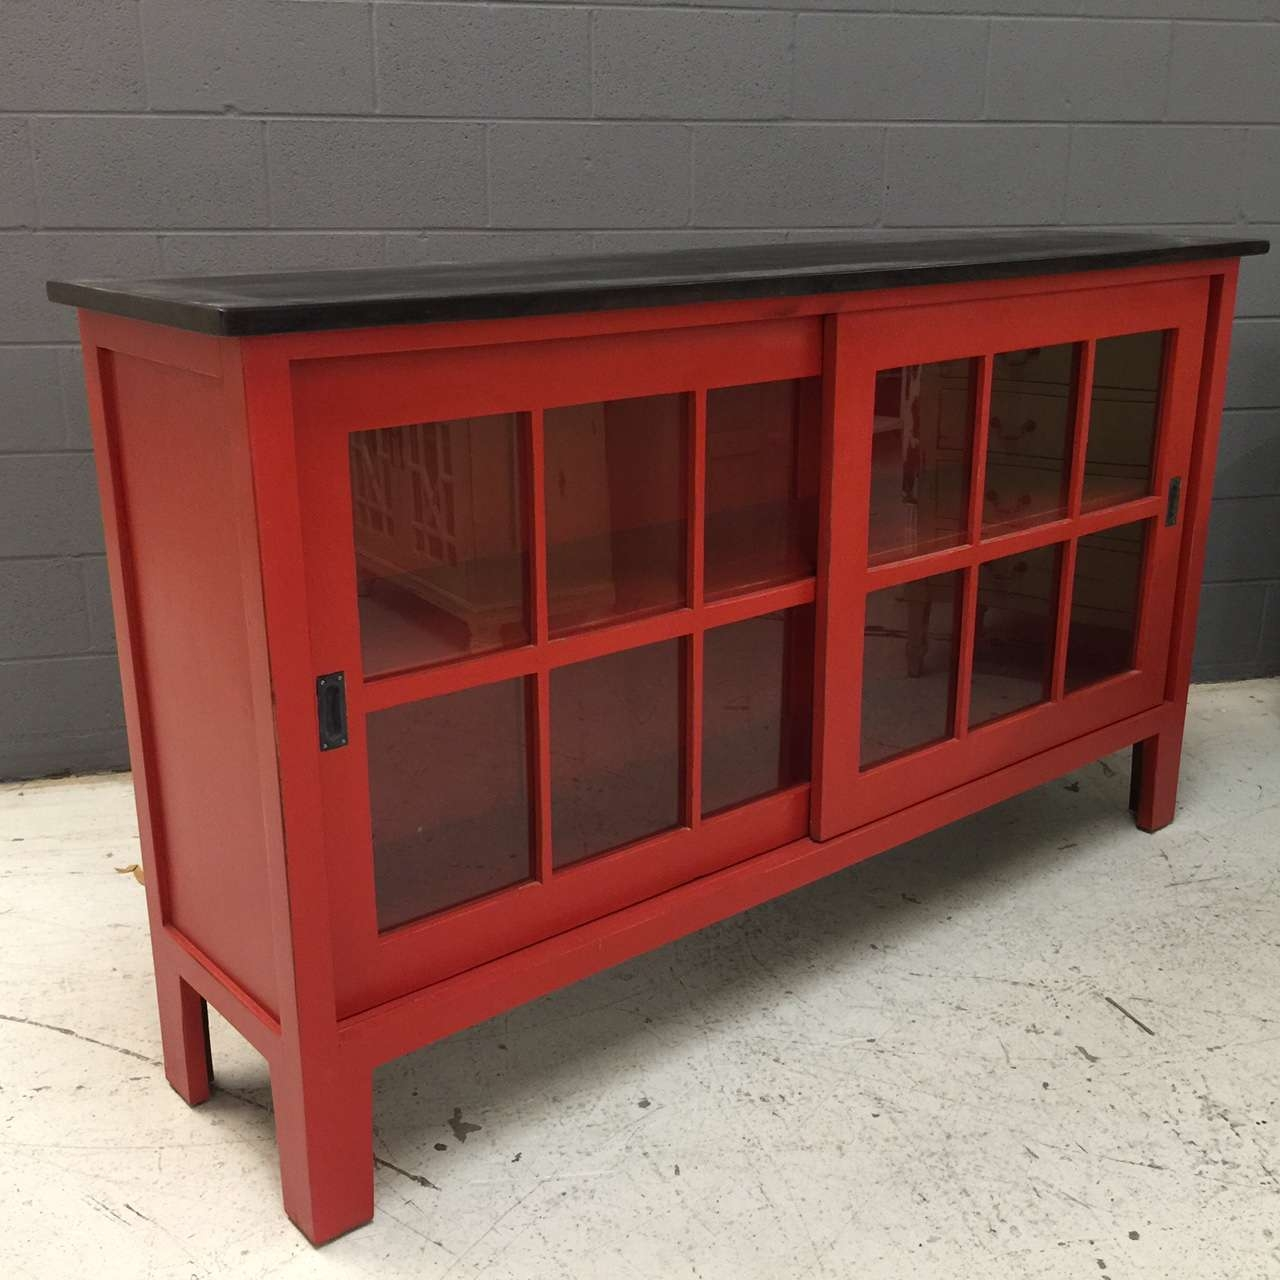 Collection Sideboard With Sliding Doors Pictures – Losro Inside Sideboards With Glass Doors (View 19 of 20)